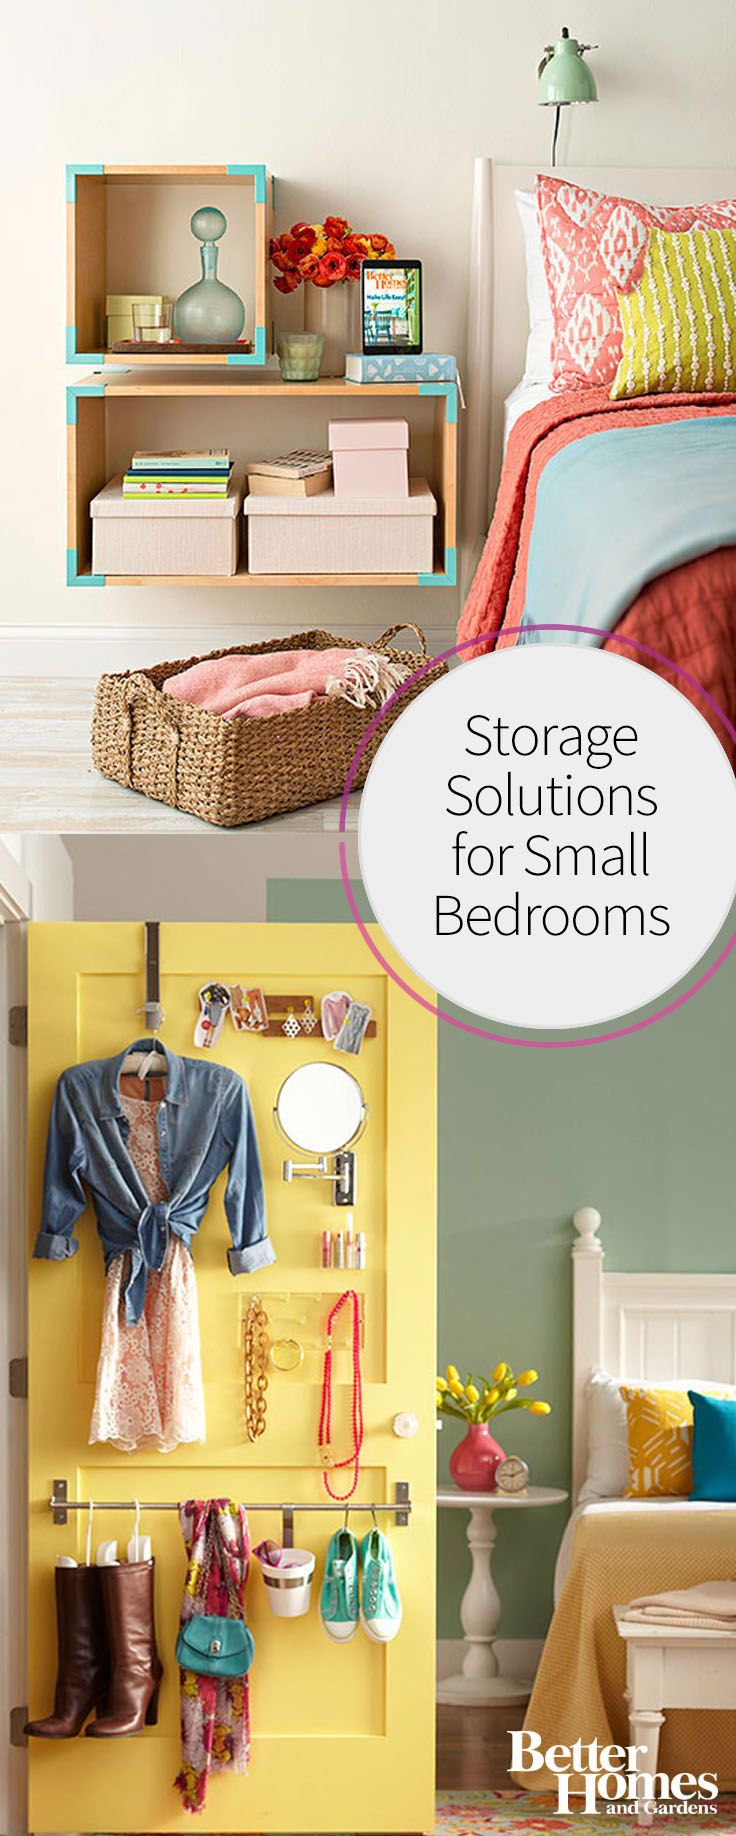 home very your for small bedroom storage ideas choosing bedrooms cool